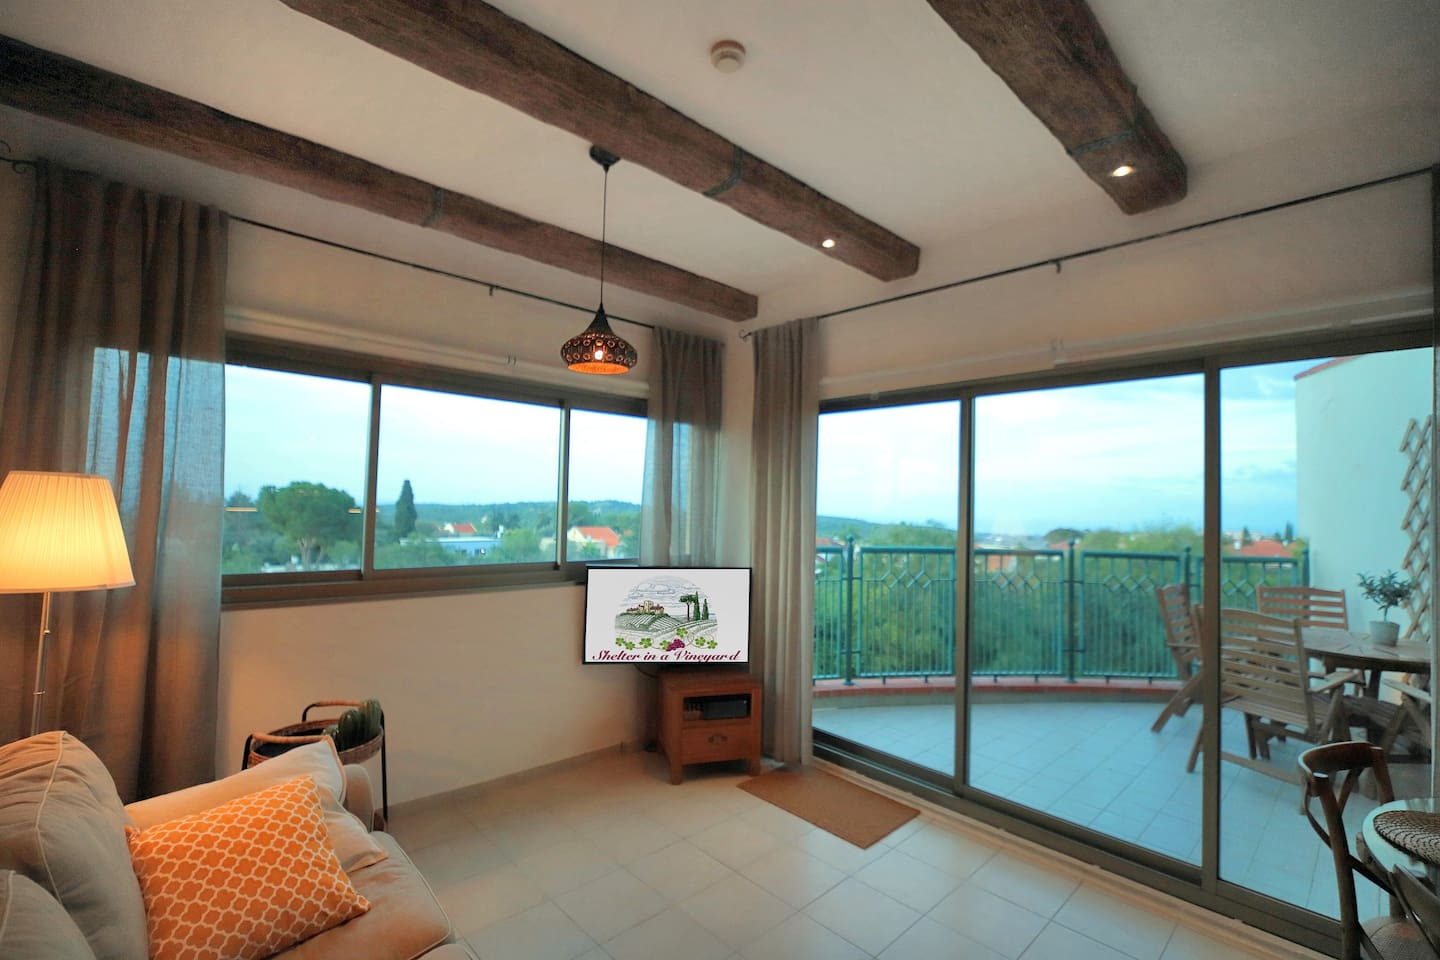 The apartment enjoys a lot of light and panoramic views due to the large windows. It has lovely terrace and wonderful architectural details.